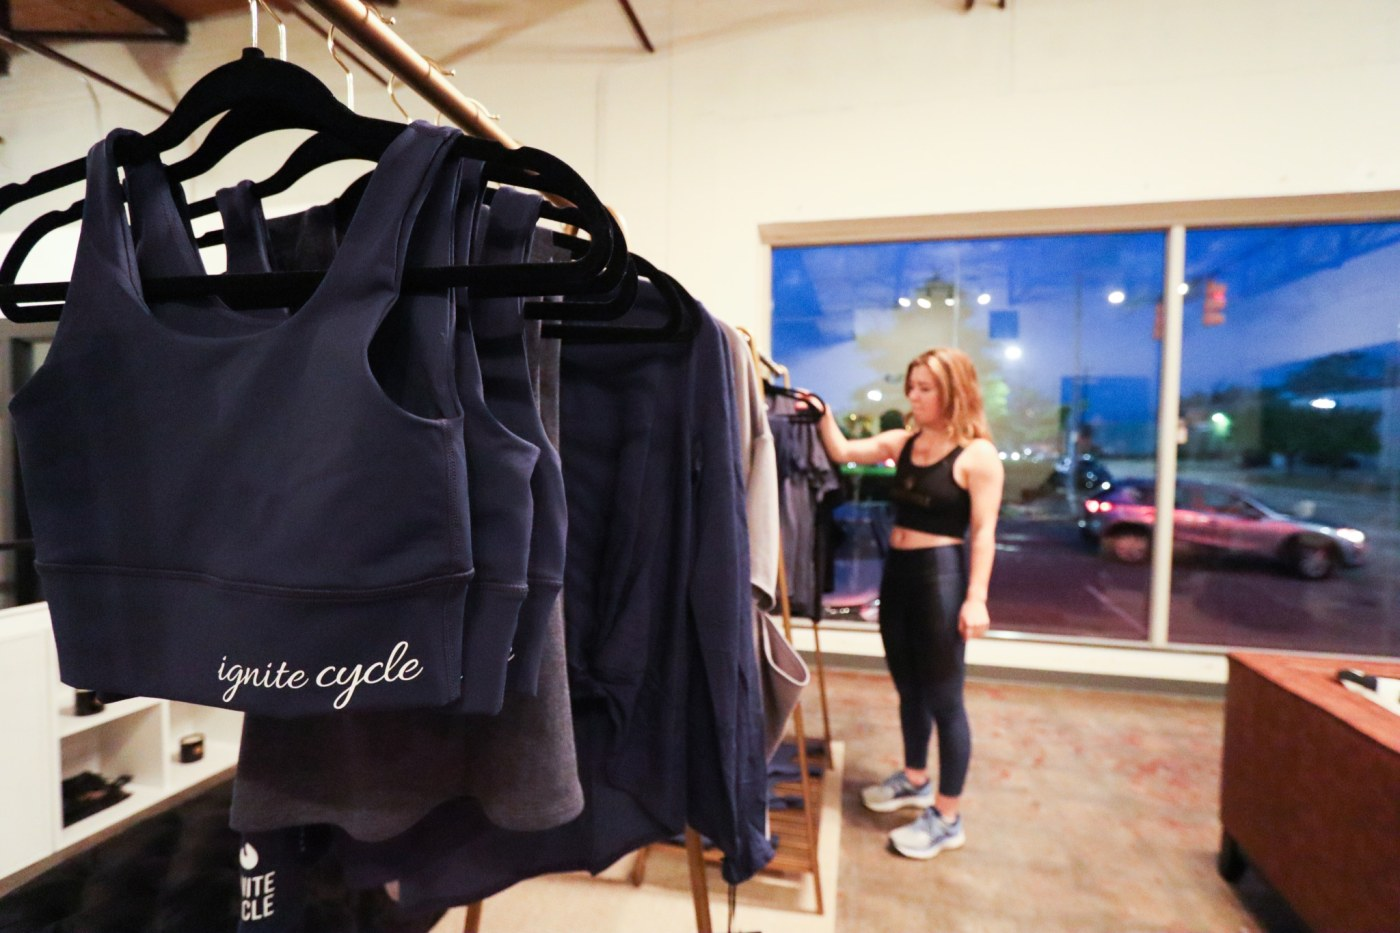 The studio sells great branded apparel specifically for indoor cycling. Or brunch. Athleisure wear knows no bounds.